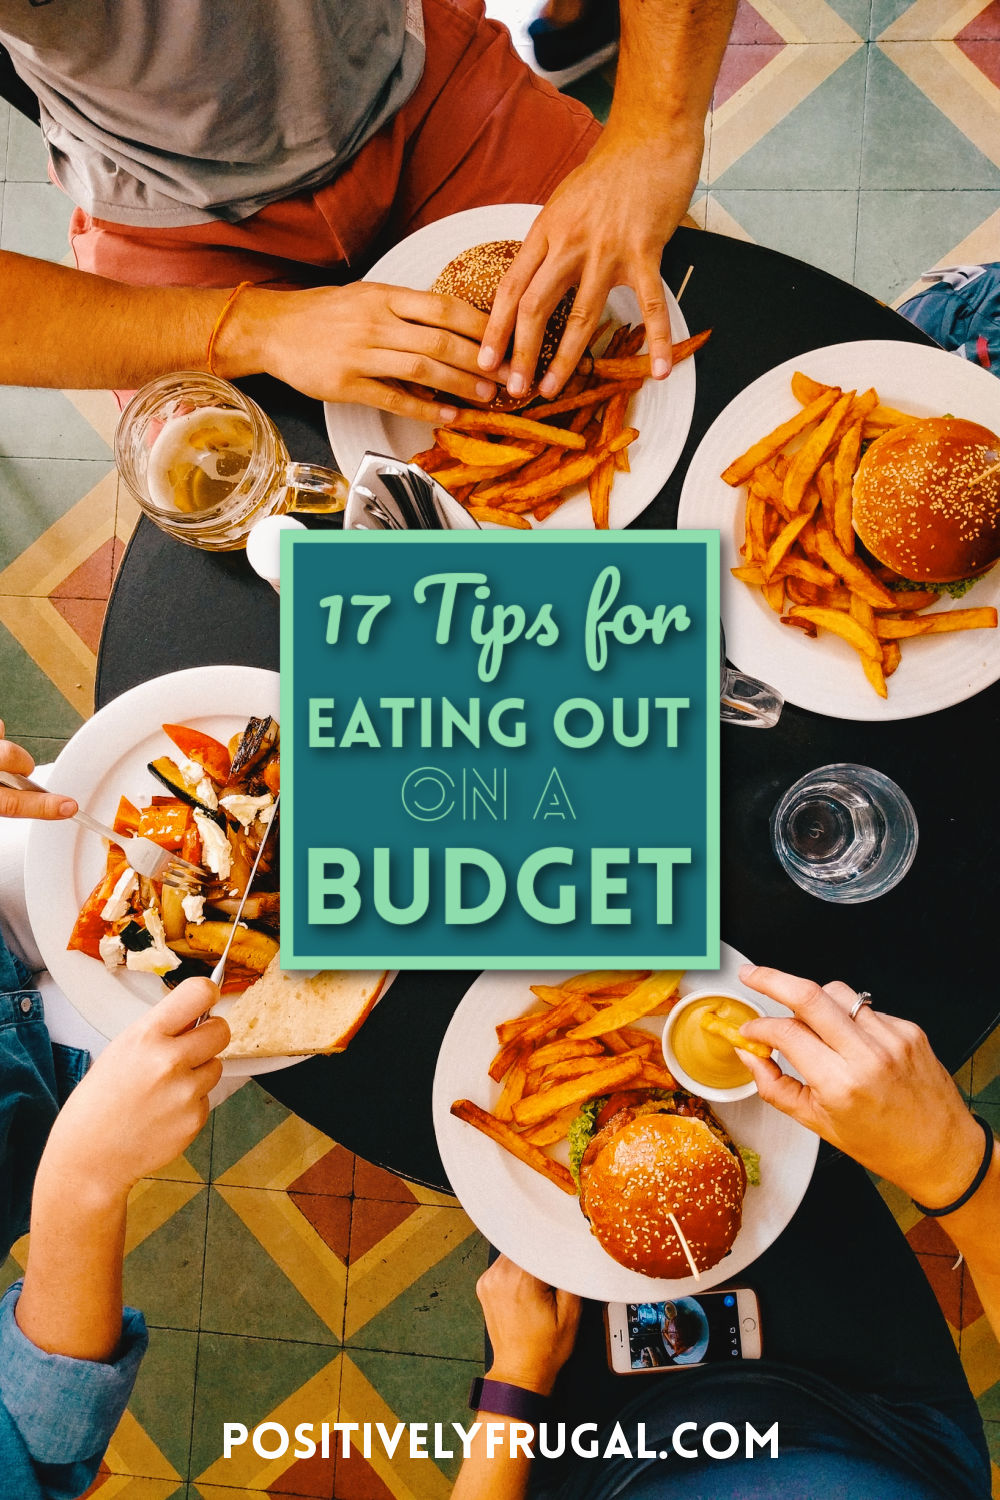 17 Tips for Eating Out on a Budget by PositivelyFrugal.com